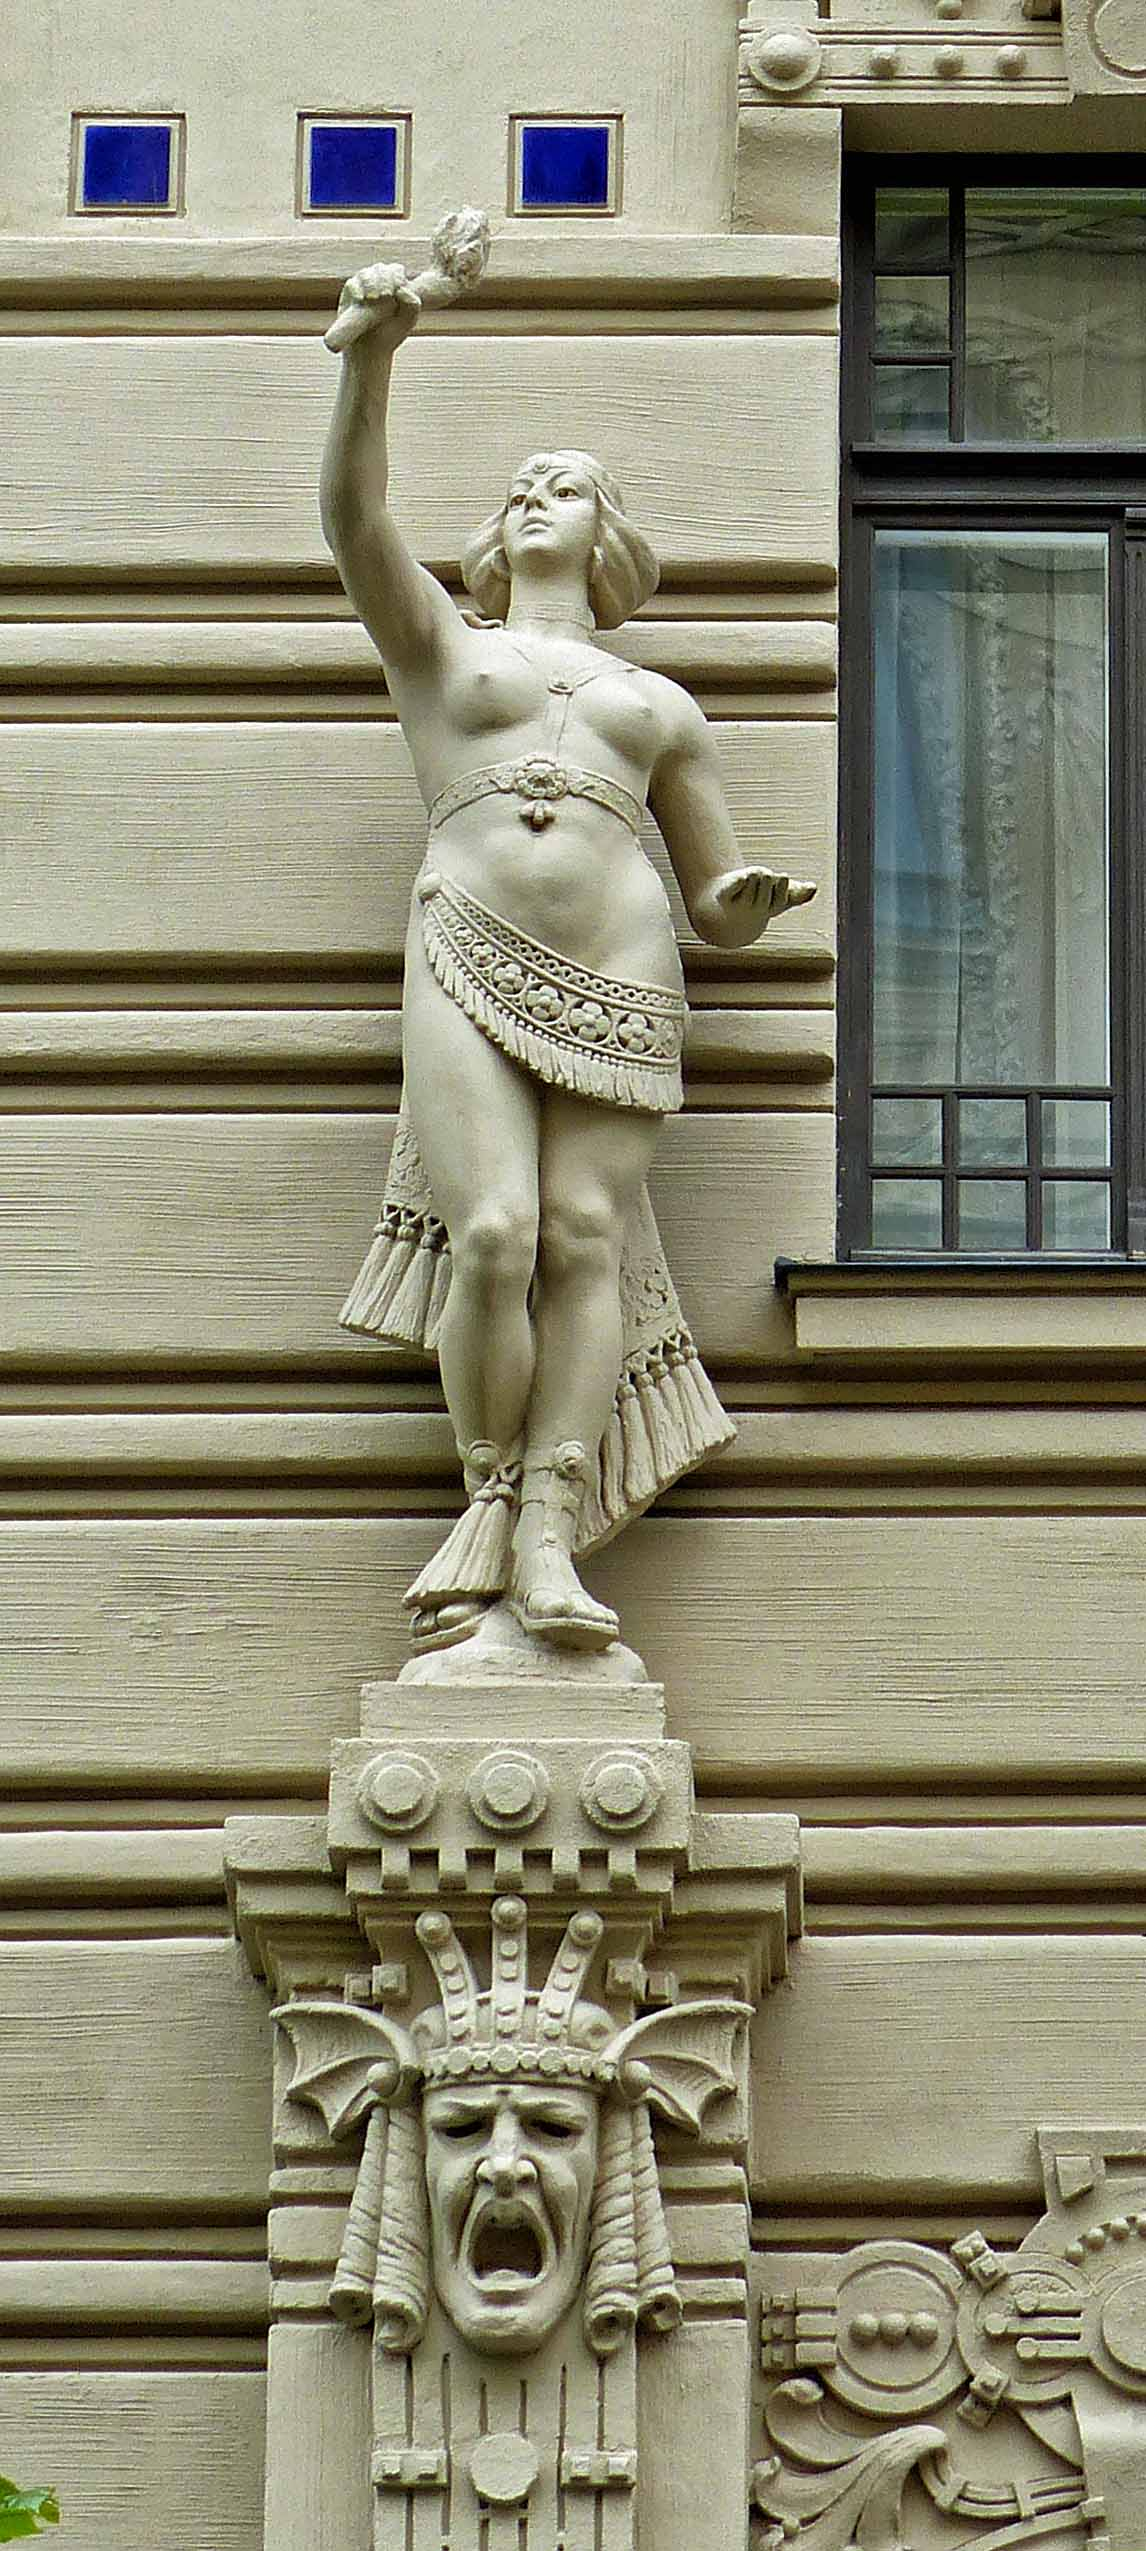 Carving of a stone figure holding a torch on the front of a building